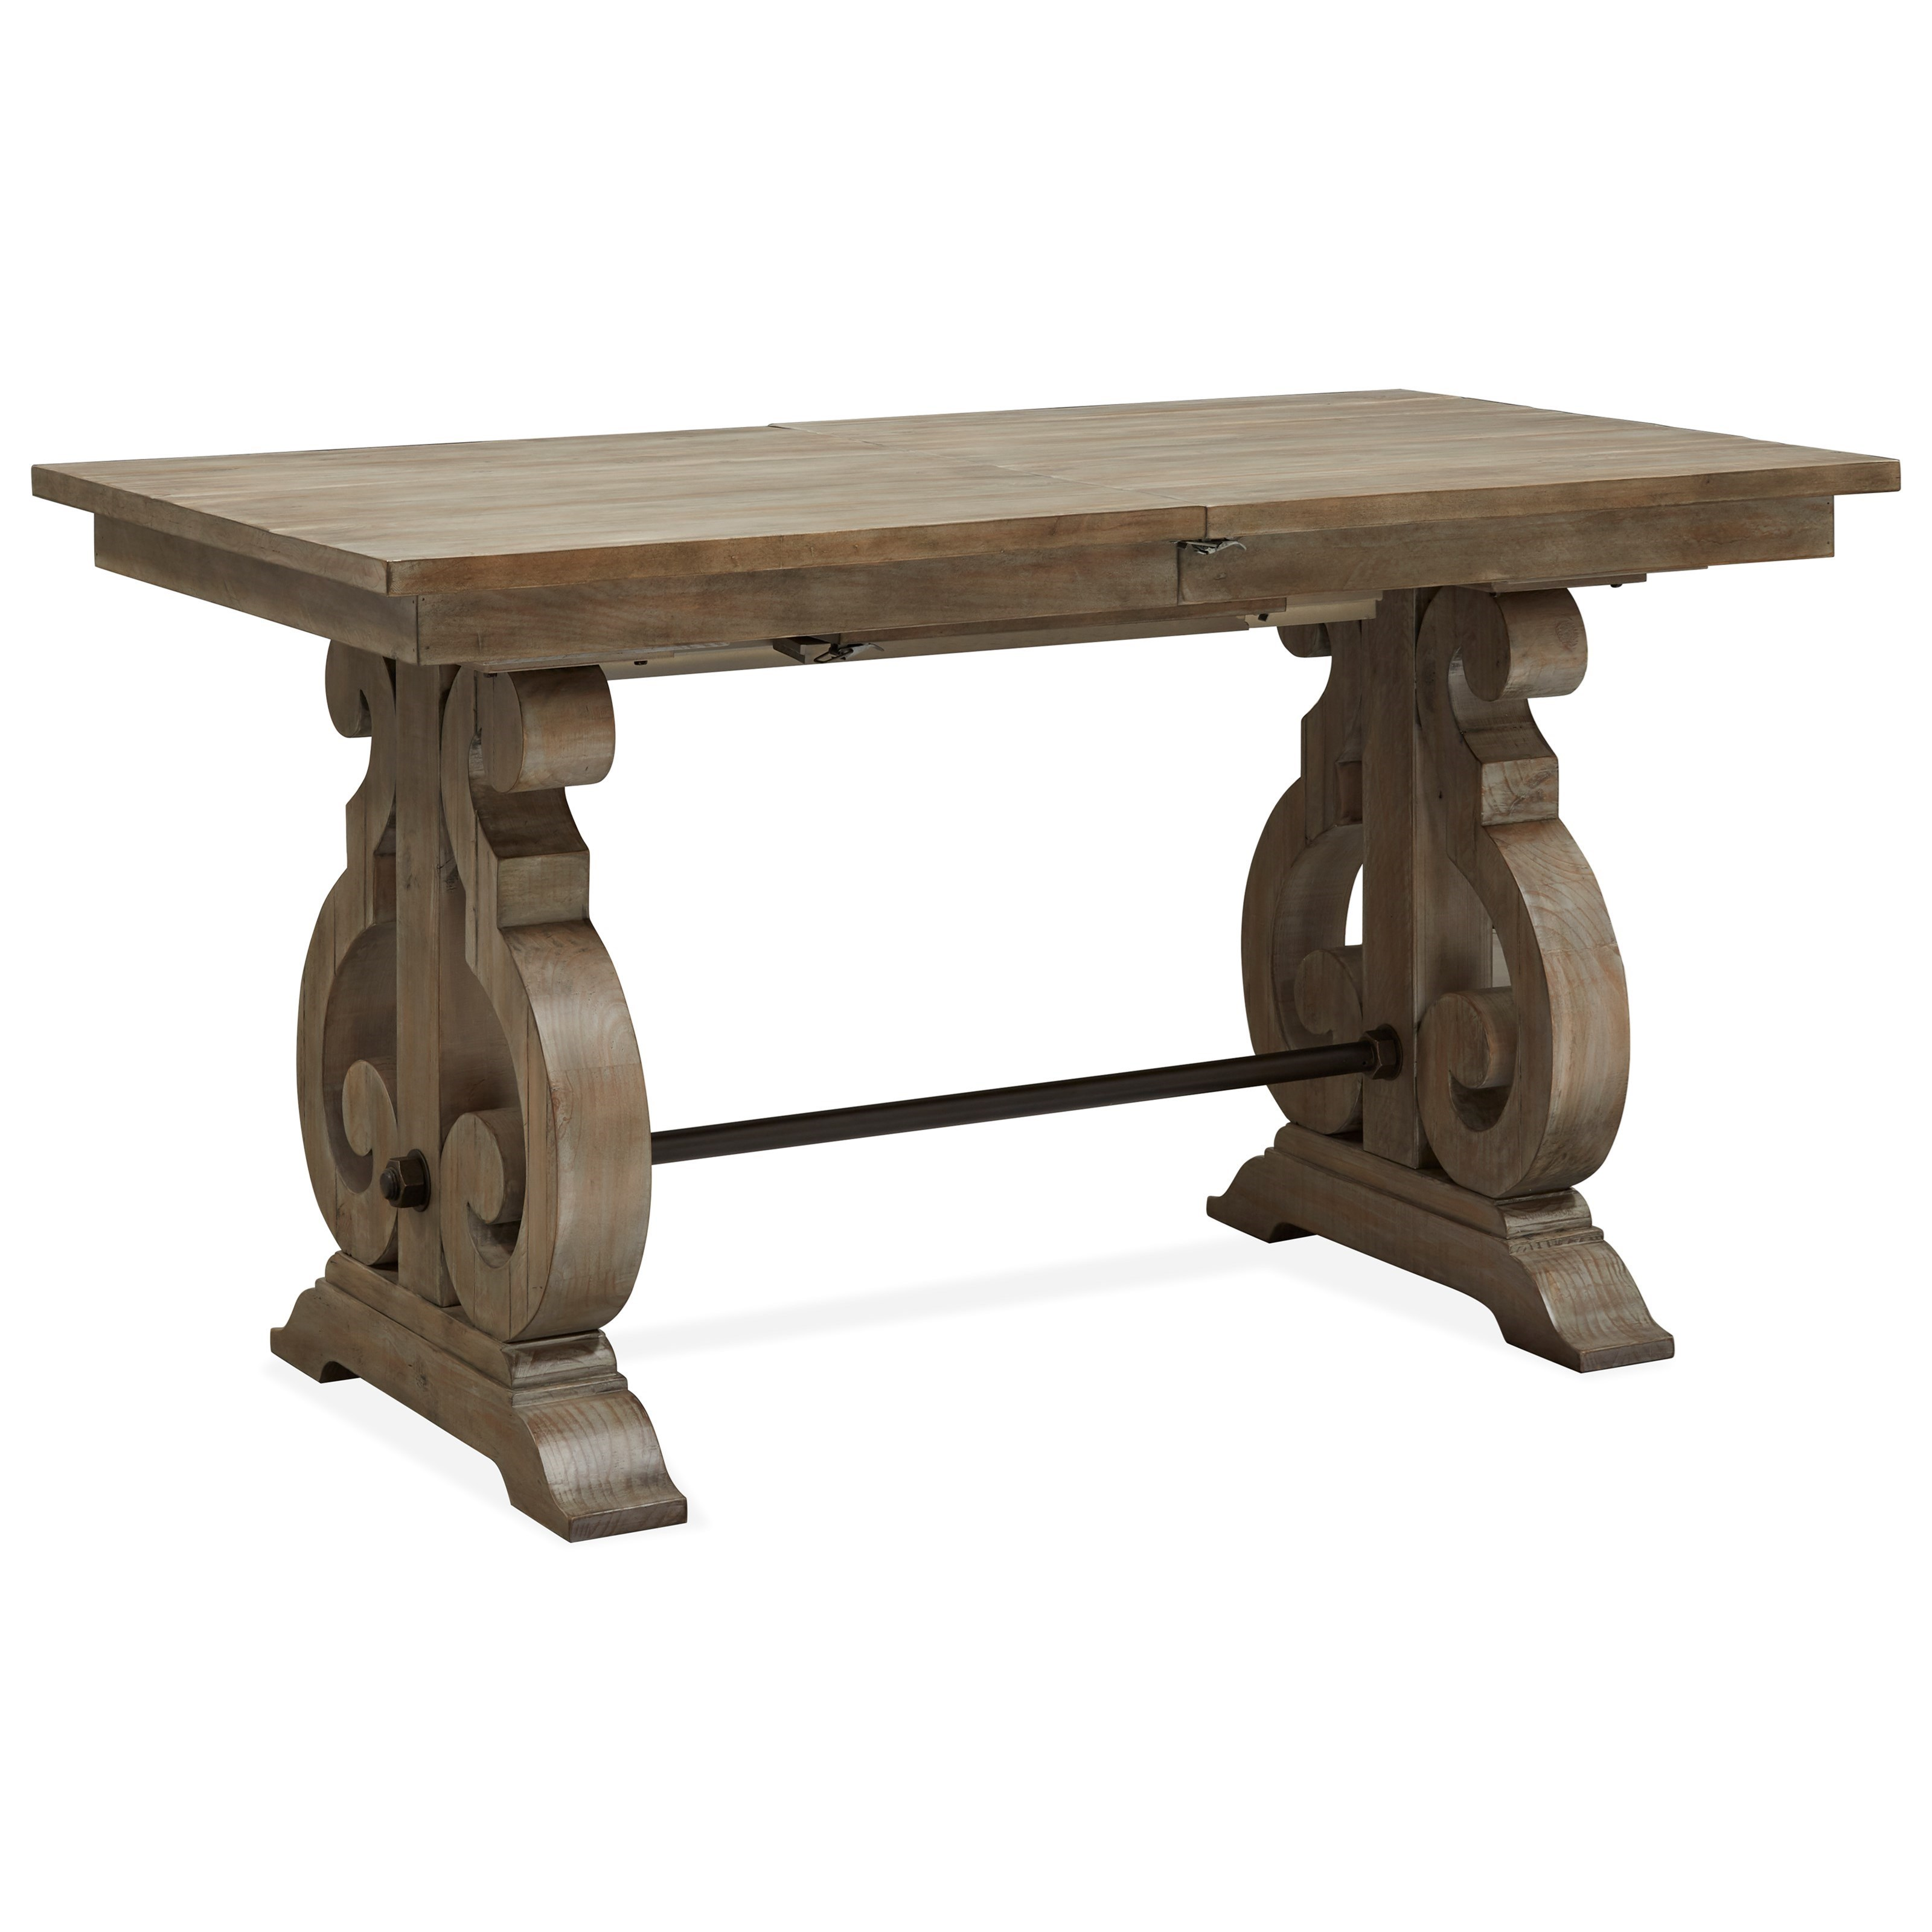 Tinley Park Rectangular Counter Table by Magnussen Home at Baer's Furniture